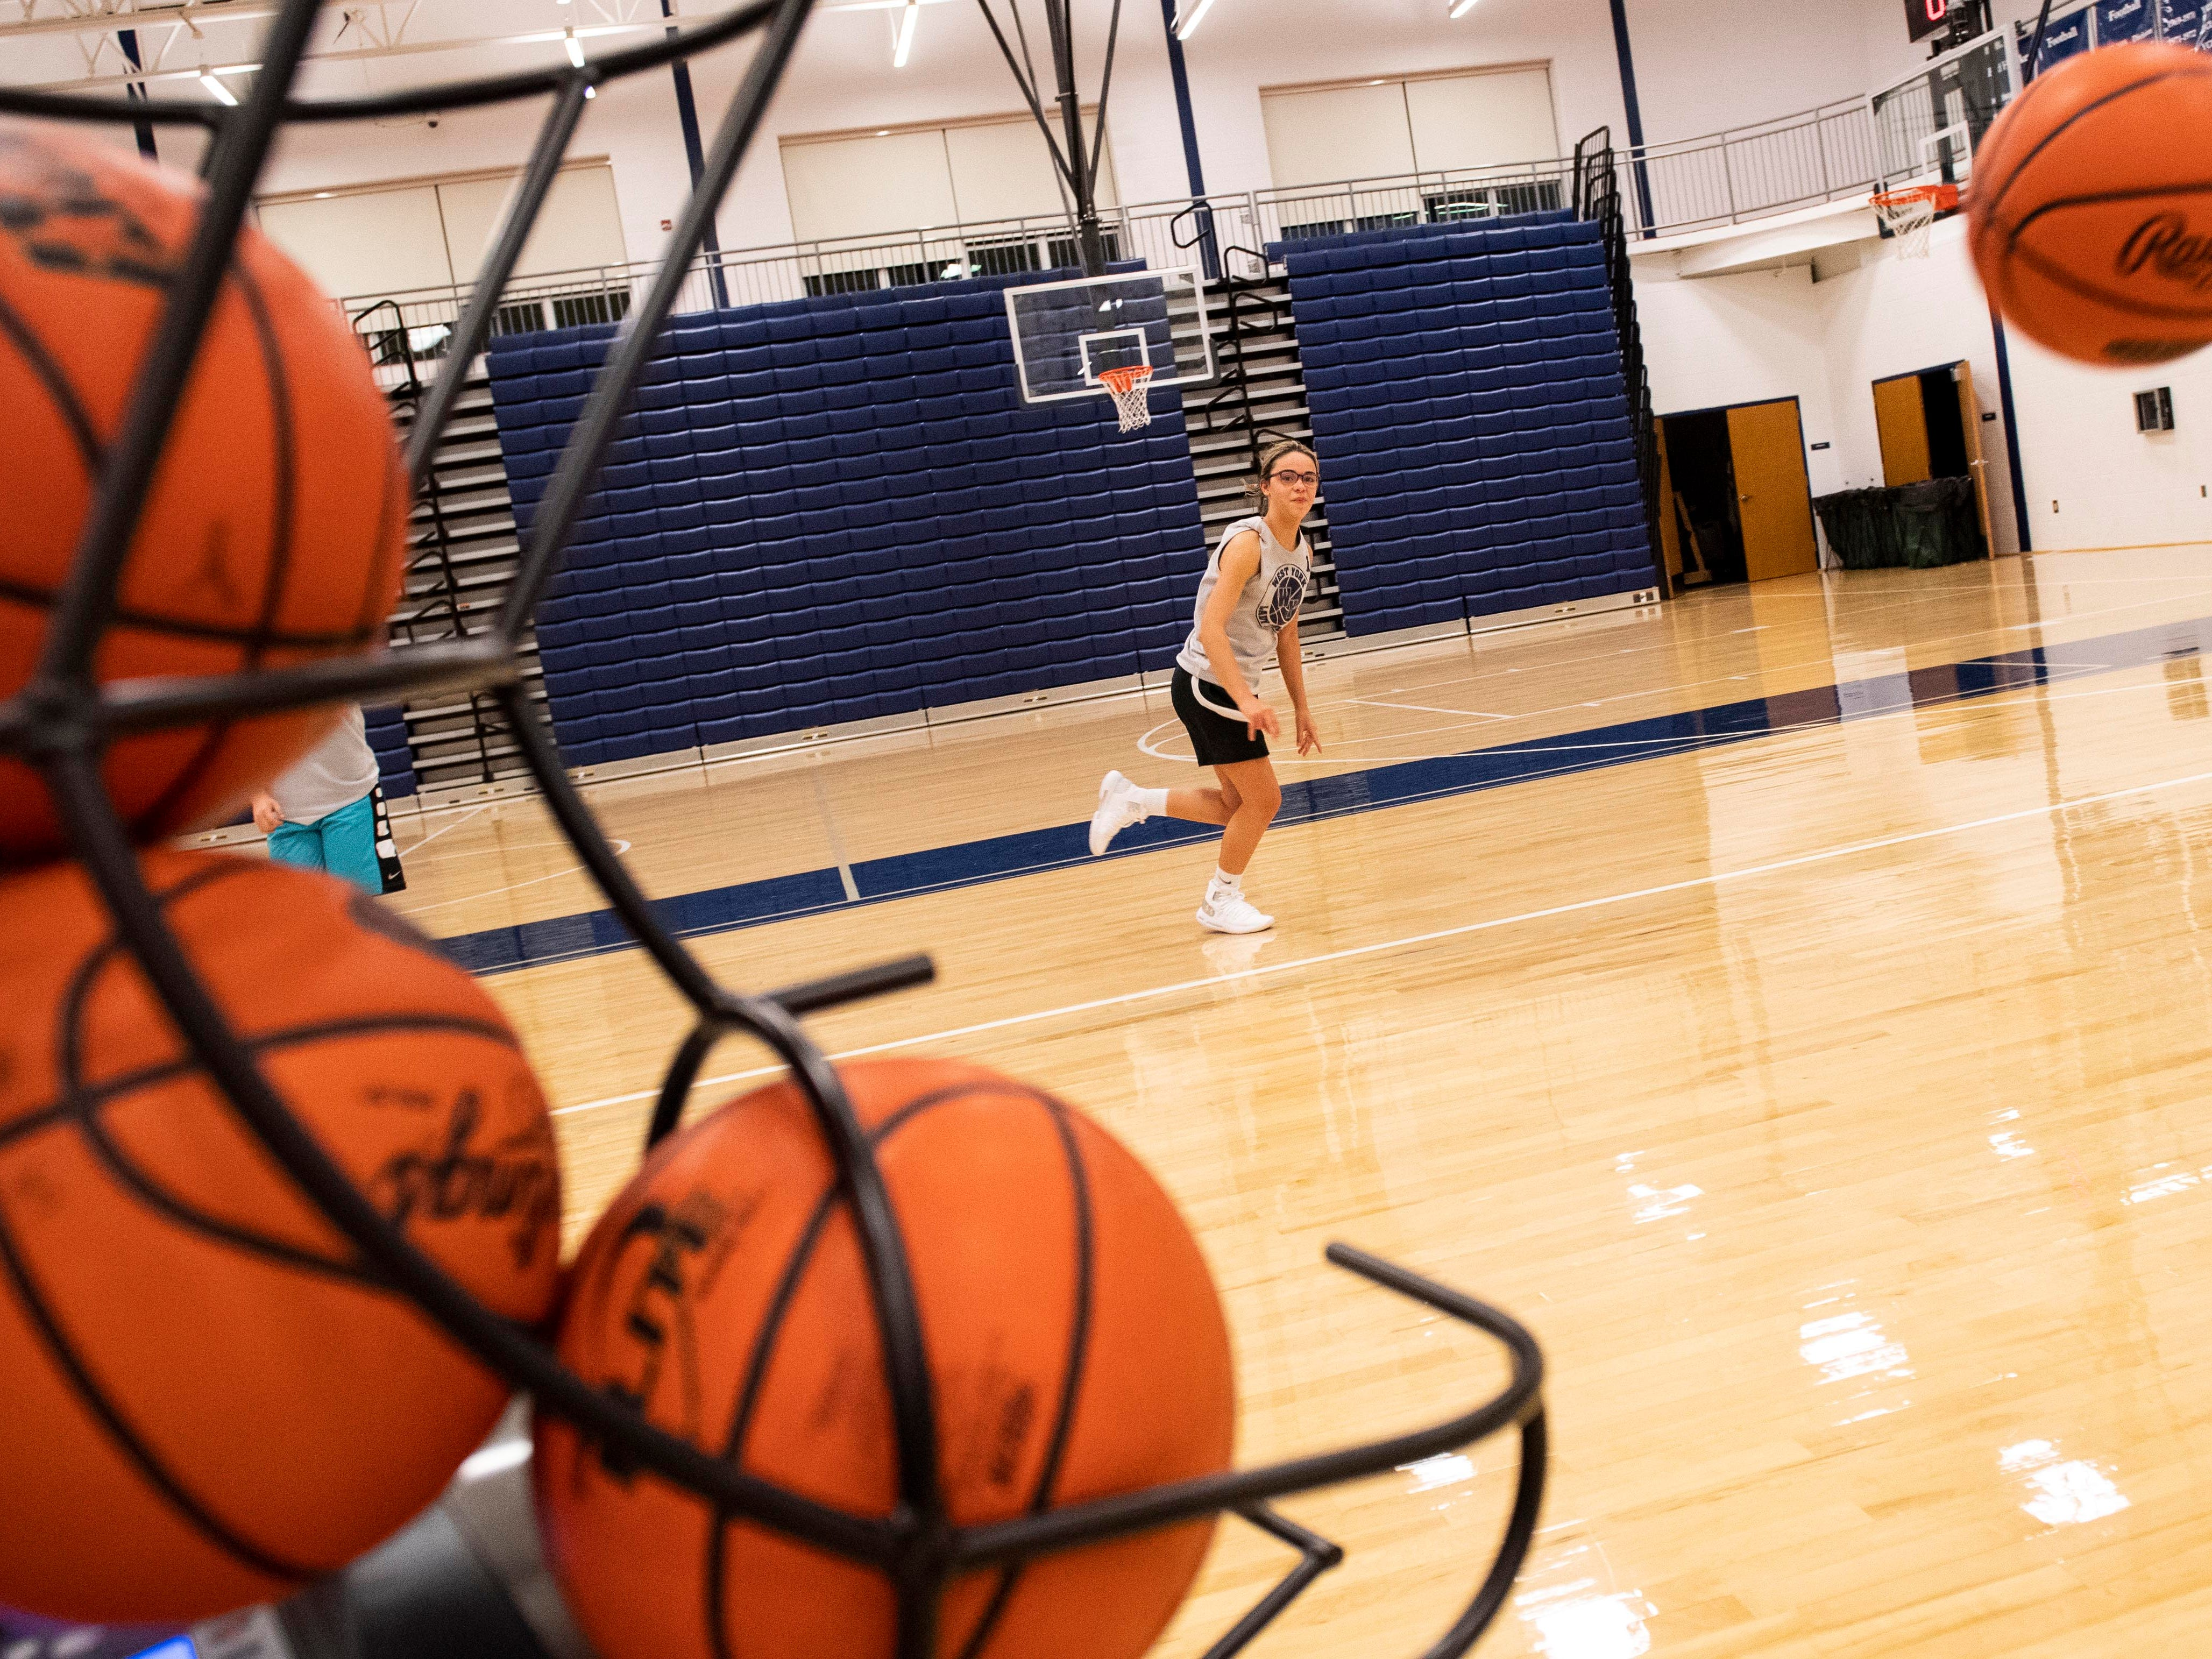 West York girls' basketball players work on guard drills during the first official day of winter sports practice on Friday, November 16, 2018.